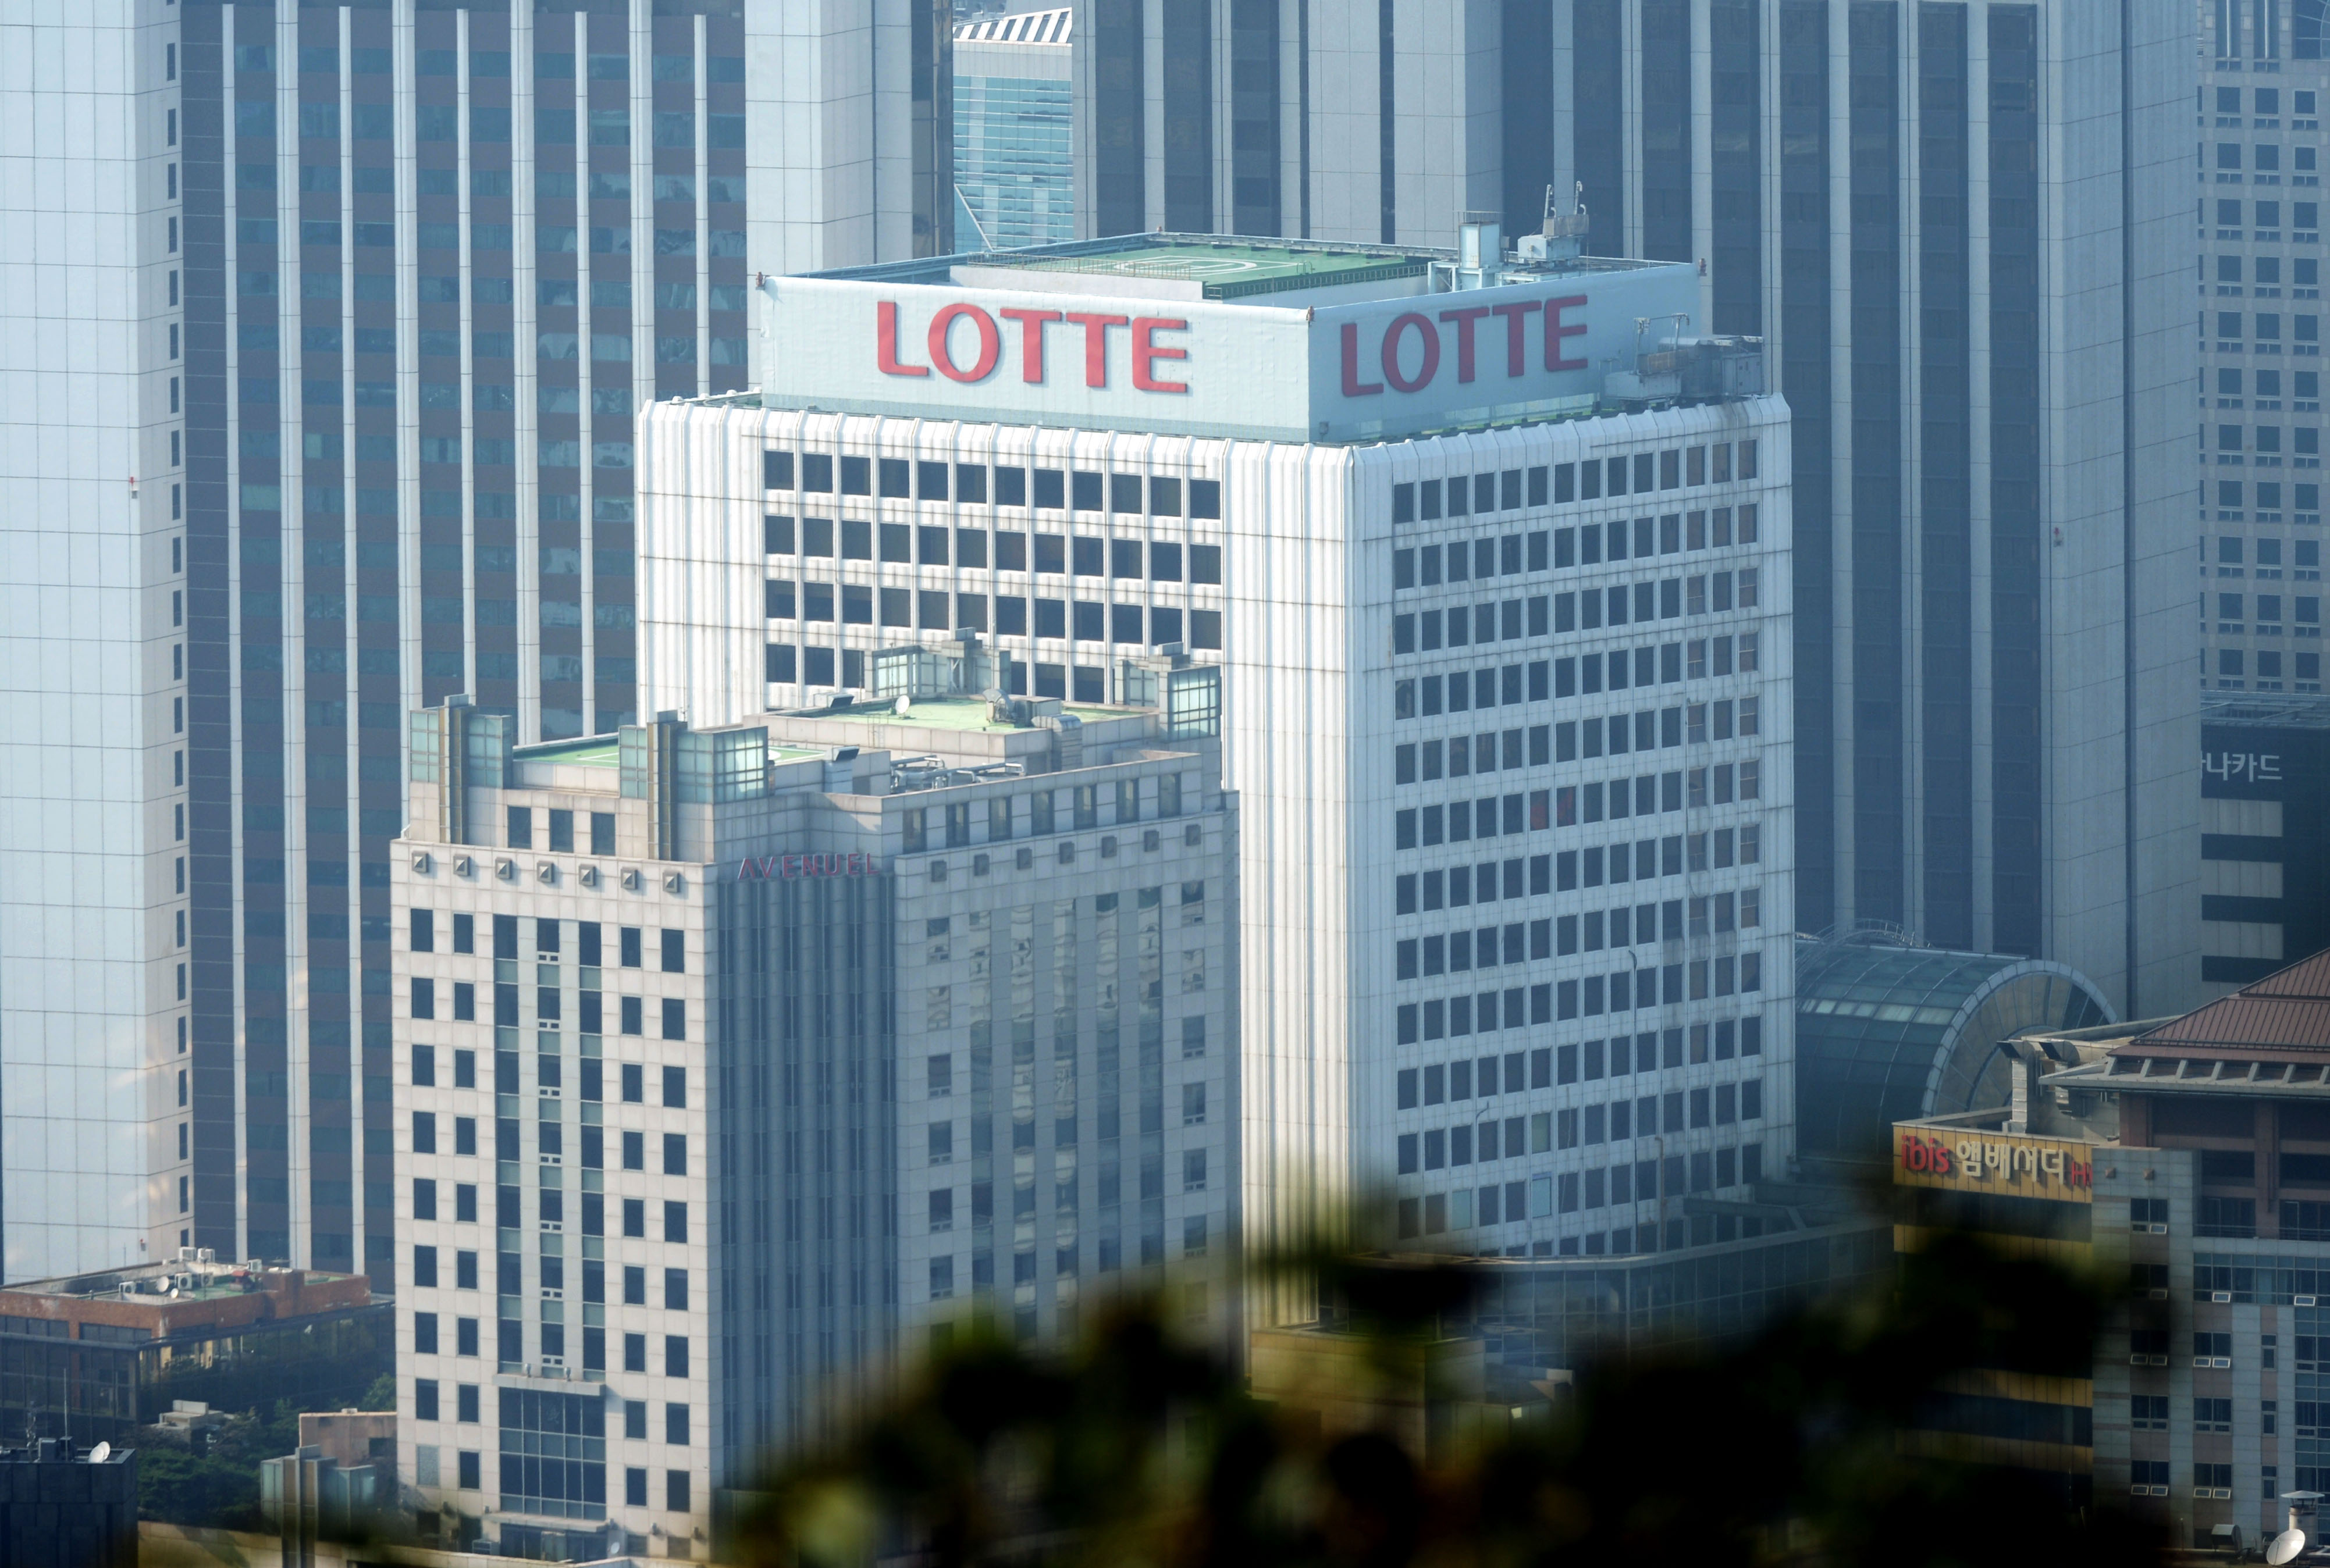 Lotte Group will be able to stabilize its holding company system, with the additional mergers of Lotte GRS, Fujifilm Korea, Lotte Logistics, Lotte International, Daehong Communications and Lotte IT Tech.